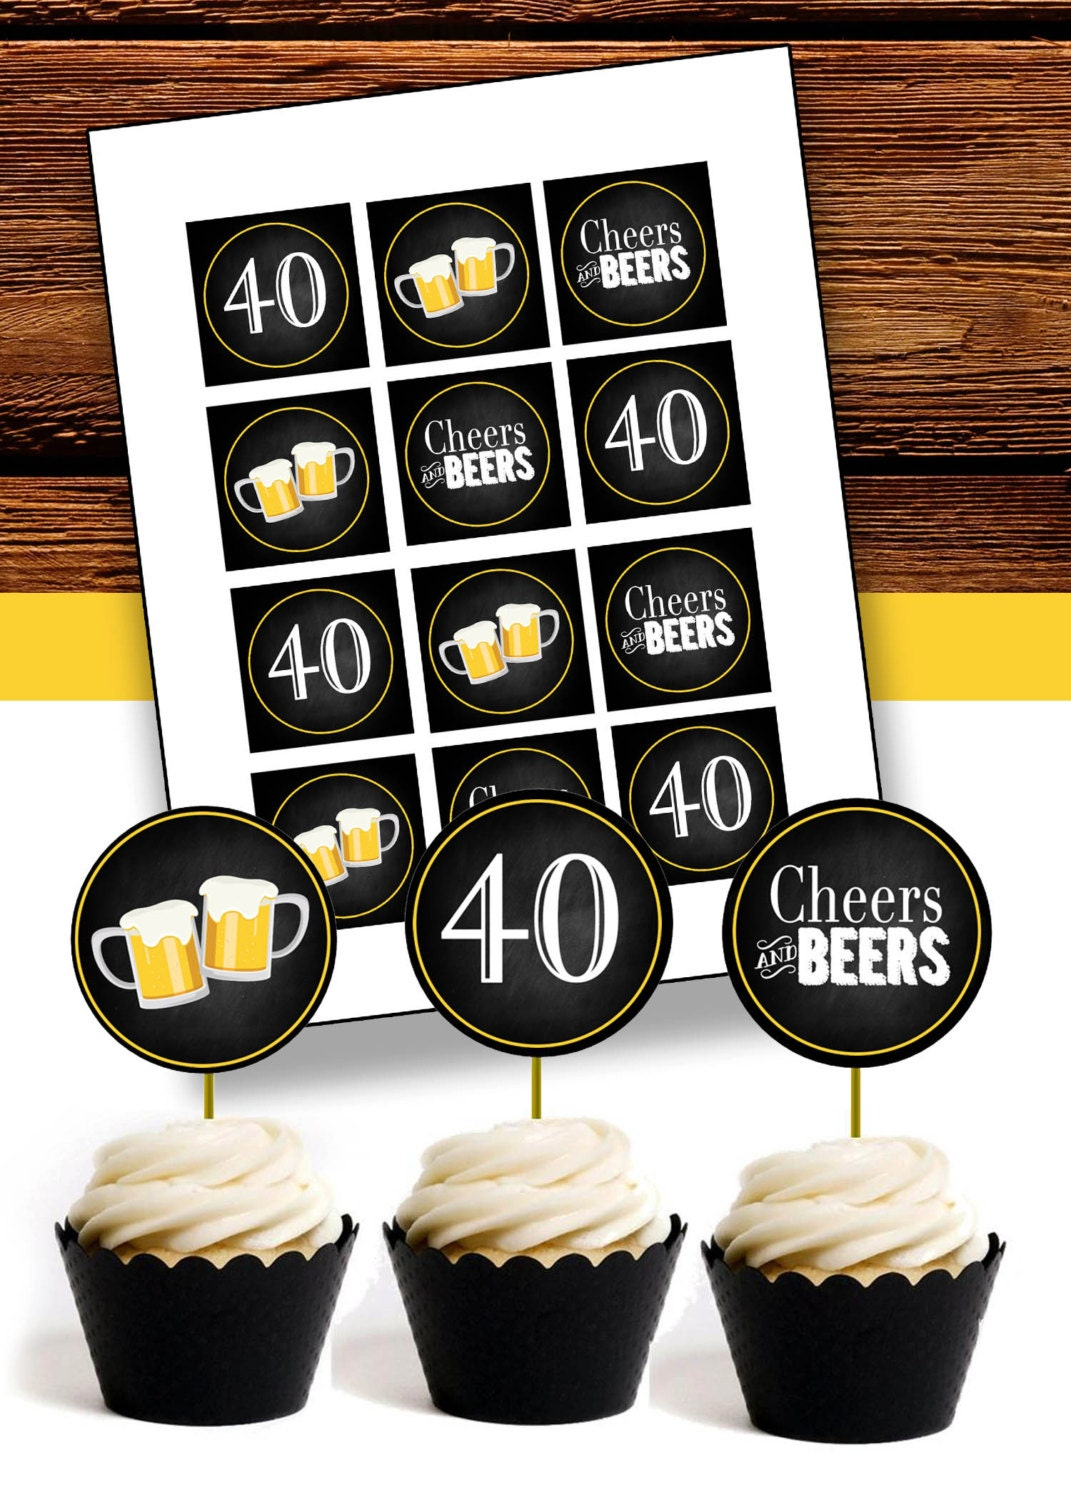 Cheers Amp Beers For 40 Years Cupcake Toppers Instant Digital